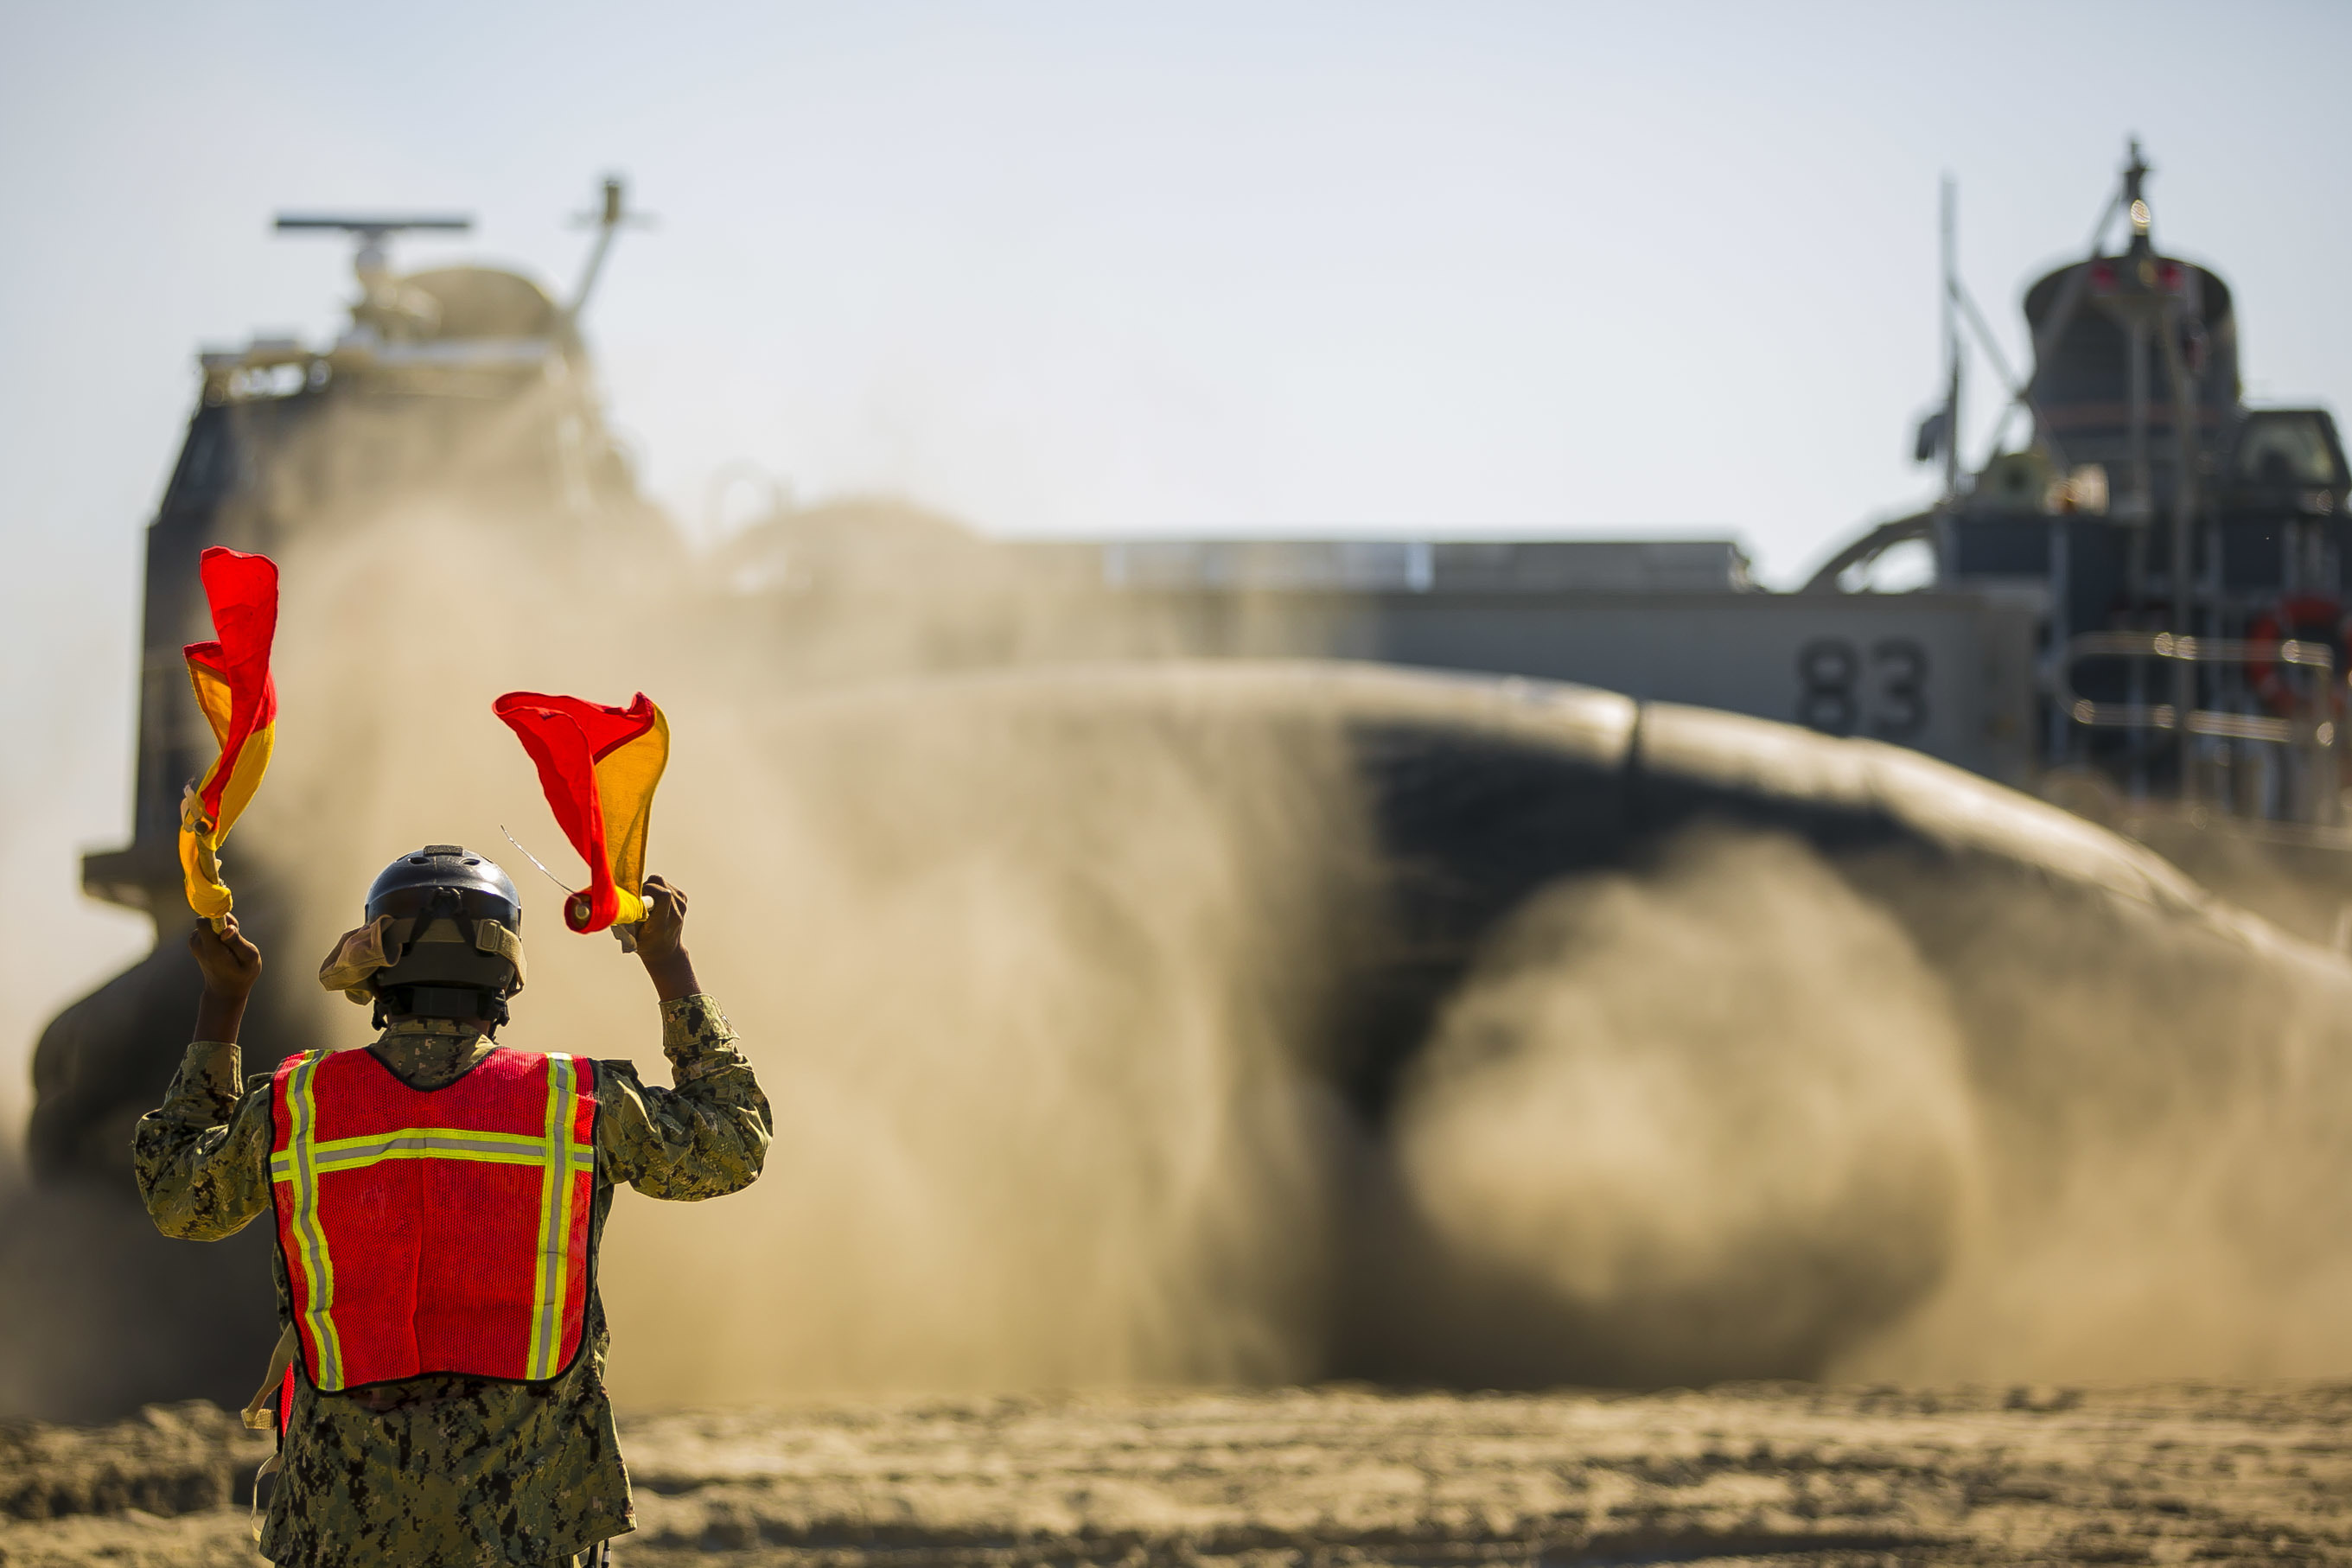 A U.S. Navy sailor signals Landing Craft, Air Cushion 83, to embark on the amphibious assault ship USS Iwo Jima (LHD-7) as part of a Composite Training Unit Exercise (COMPTUEX) at Onslow Beach. (Staff Sgt. Dengrier M. Baez/Marine Corps)